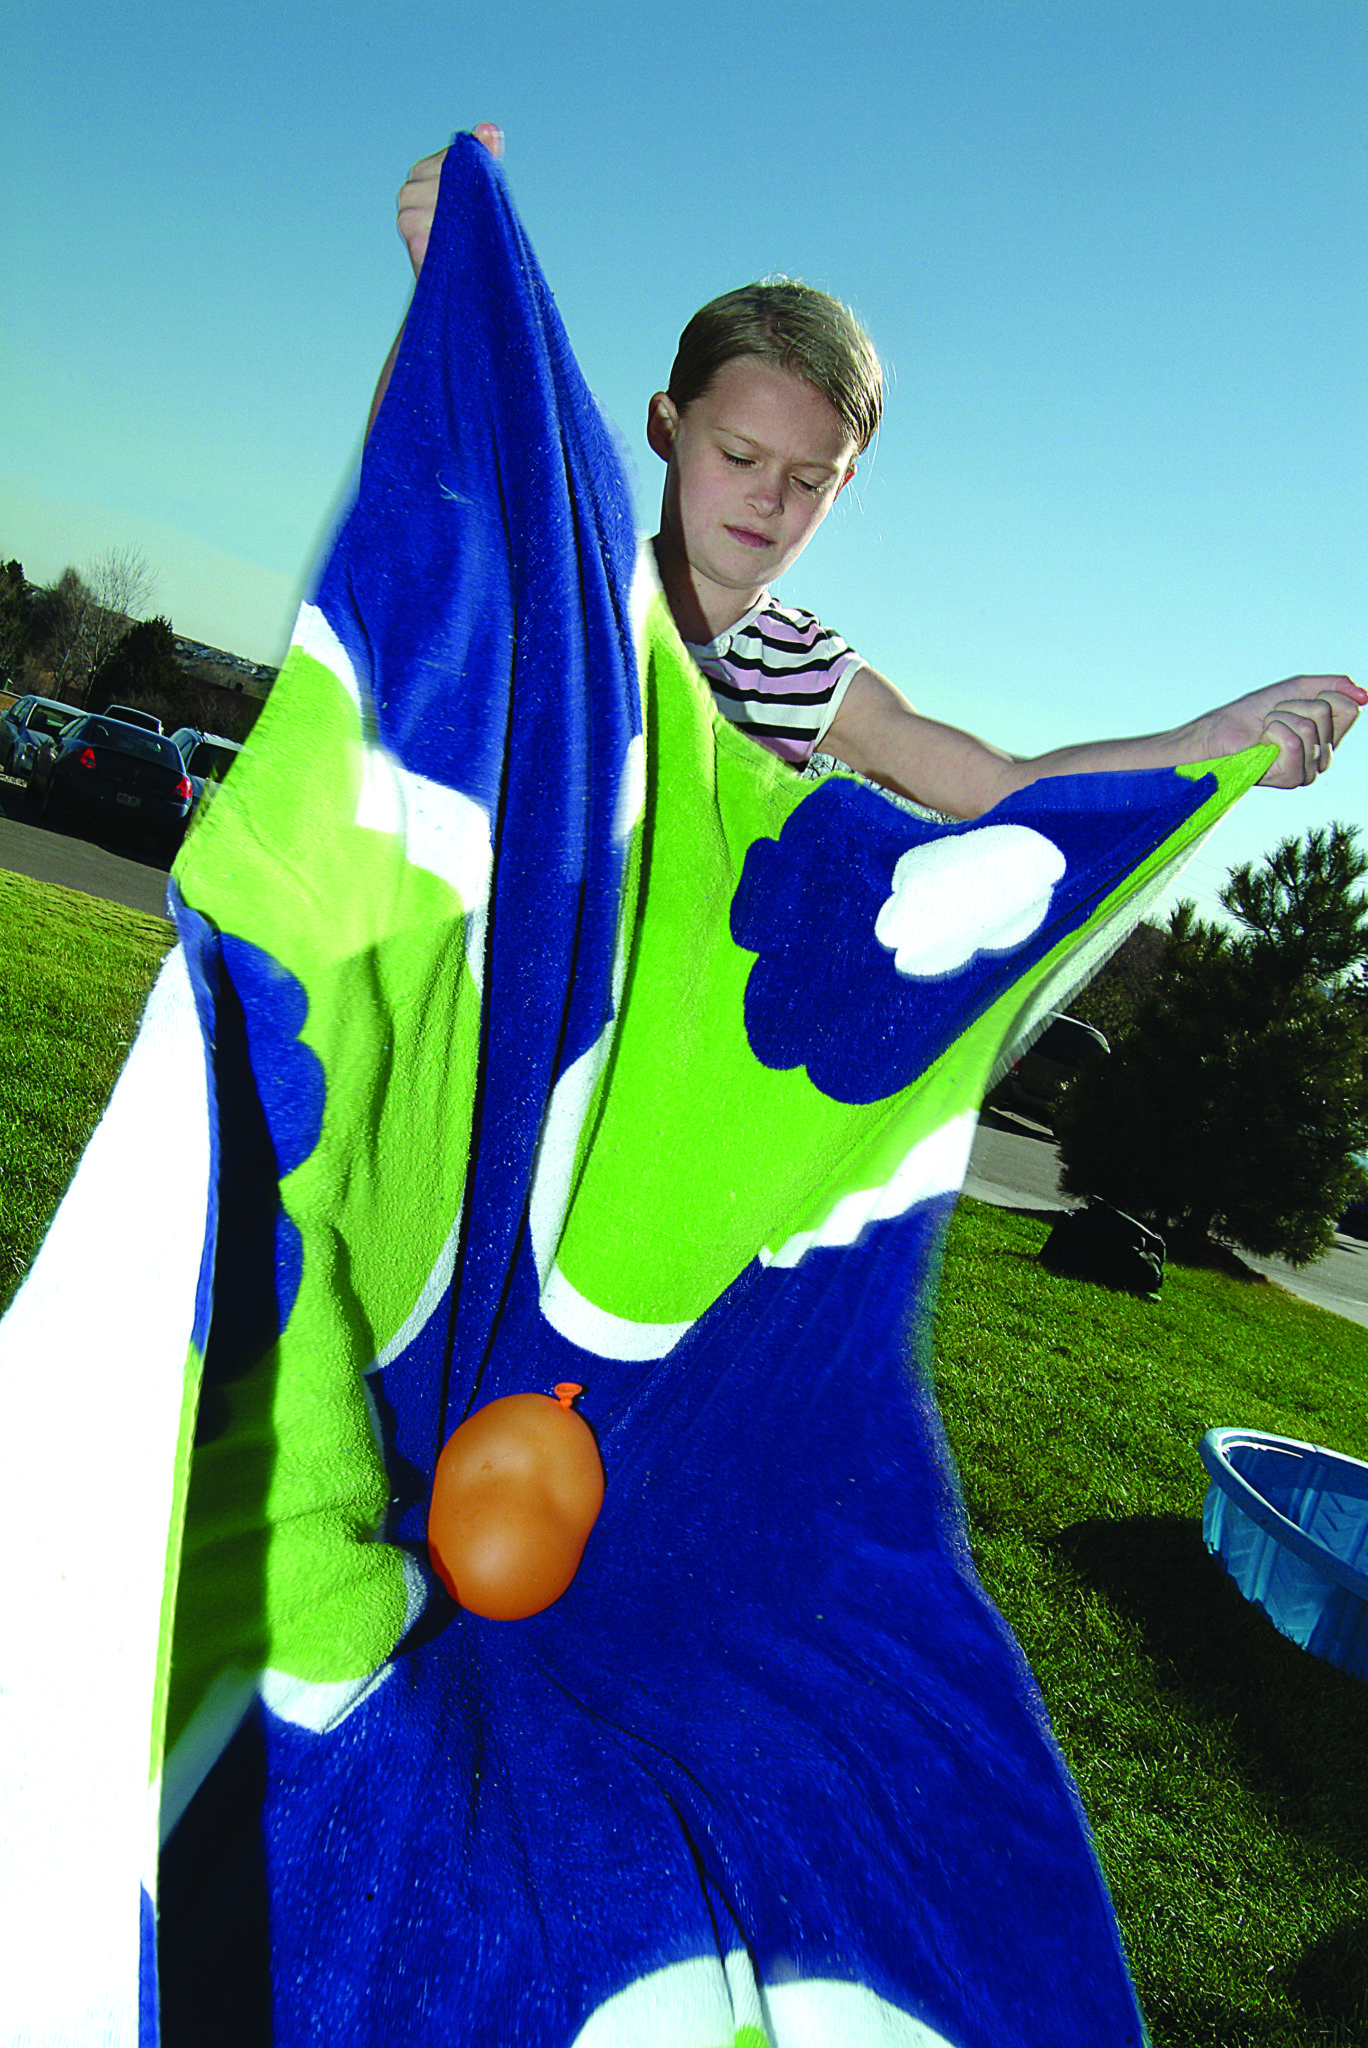 A boy tosses a water balloon with a blanket.